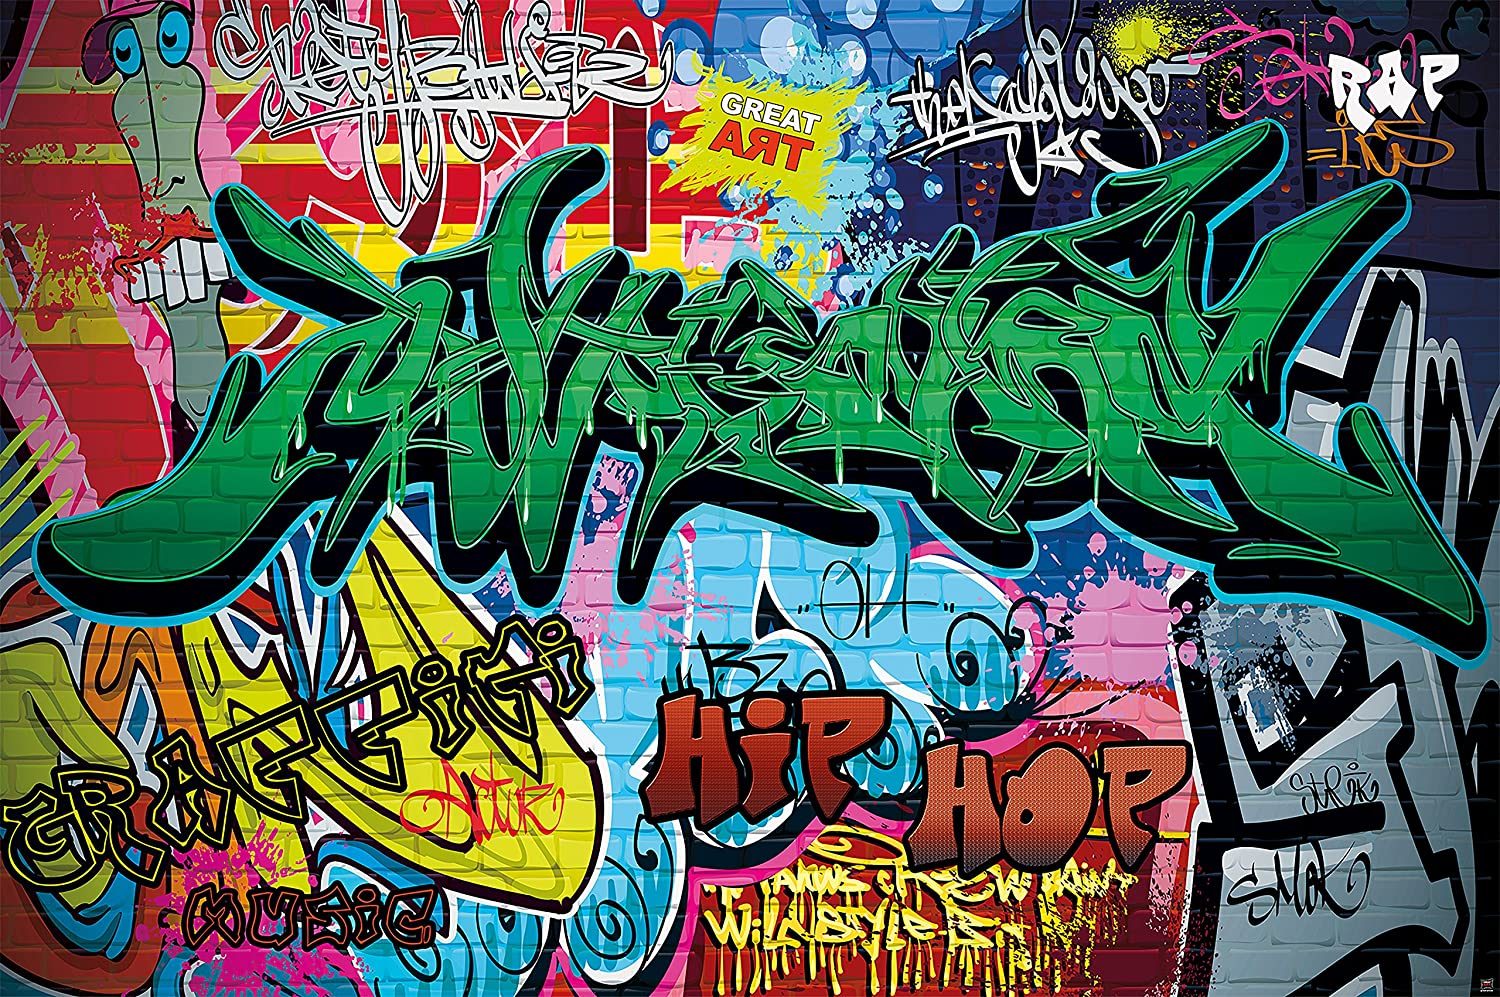 GREAT ART Wallpaper Graffiti Style - Kids and Teenagers Wall Decoration Street Art Mural Retro Posters (132.3 Inch x 93.7 Inch 336 x 238 cm)